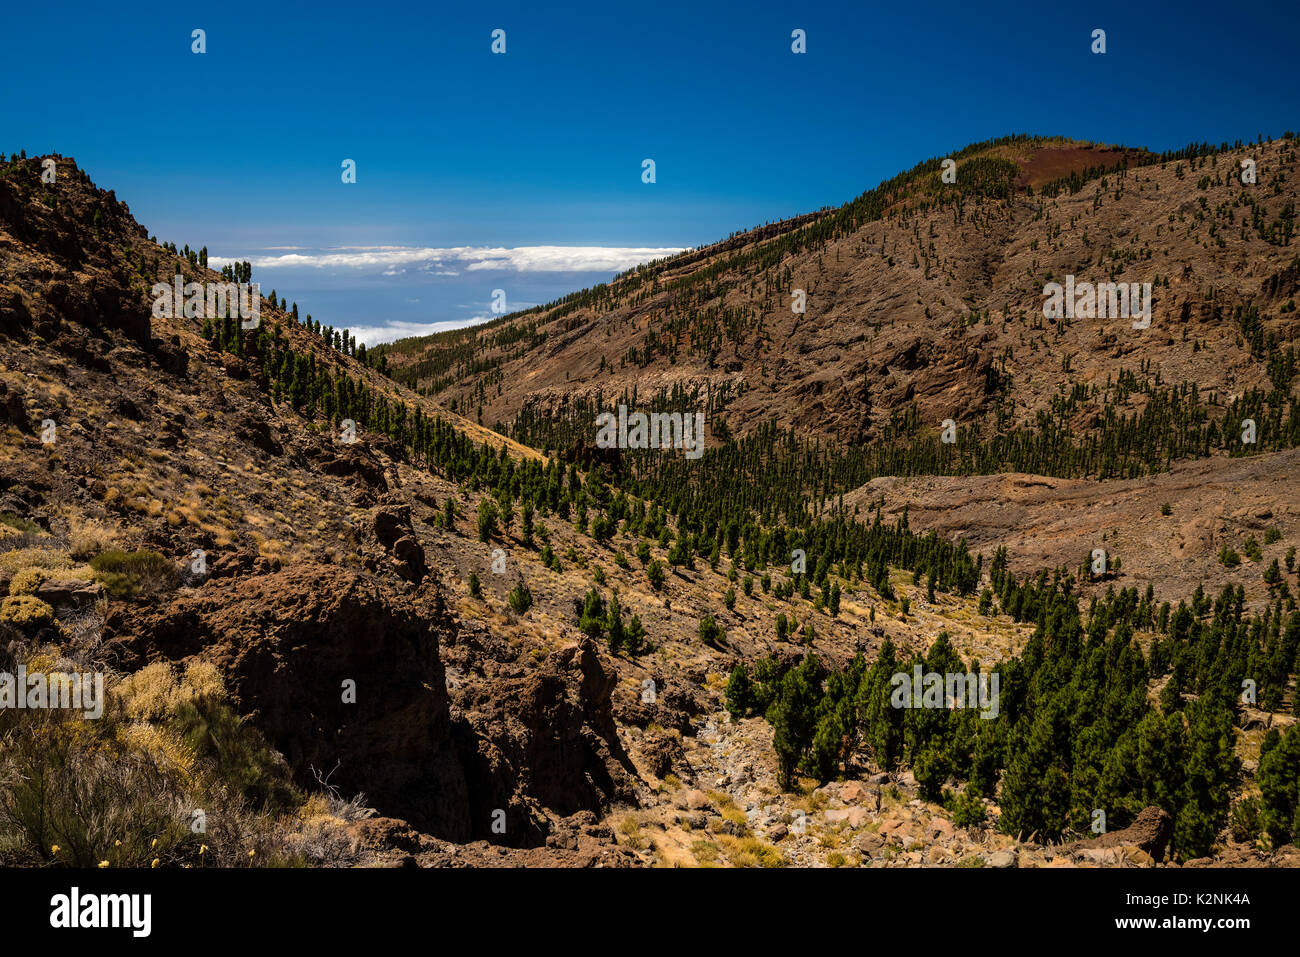 Mountain slope, overgrown with conifers, Parque Nacional del Teide, Santa Cruz de Tenerife, Tenerife, Canary Islands, Spain - Stock Image